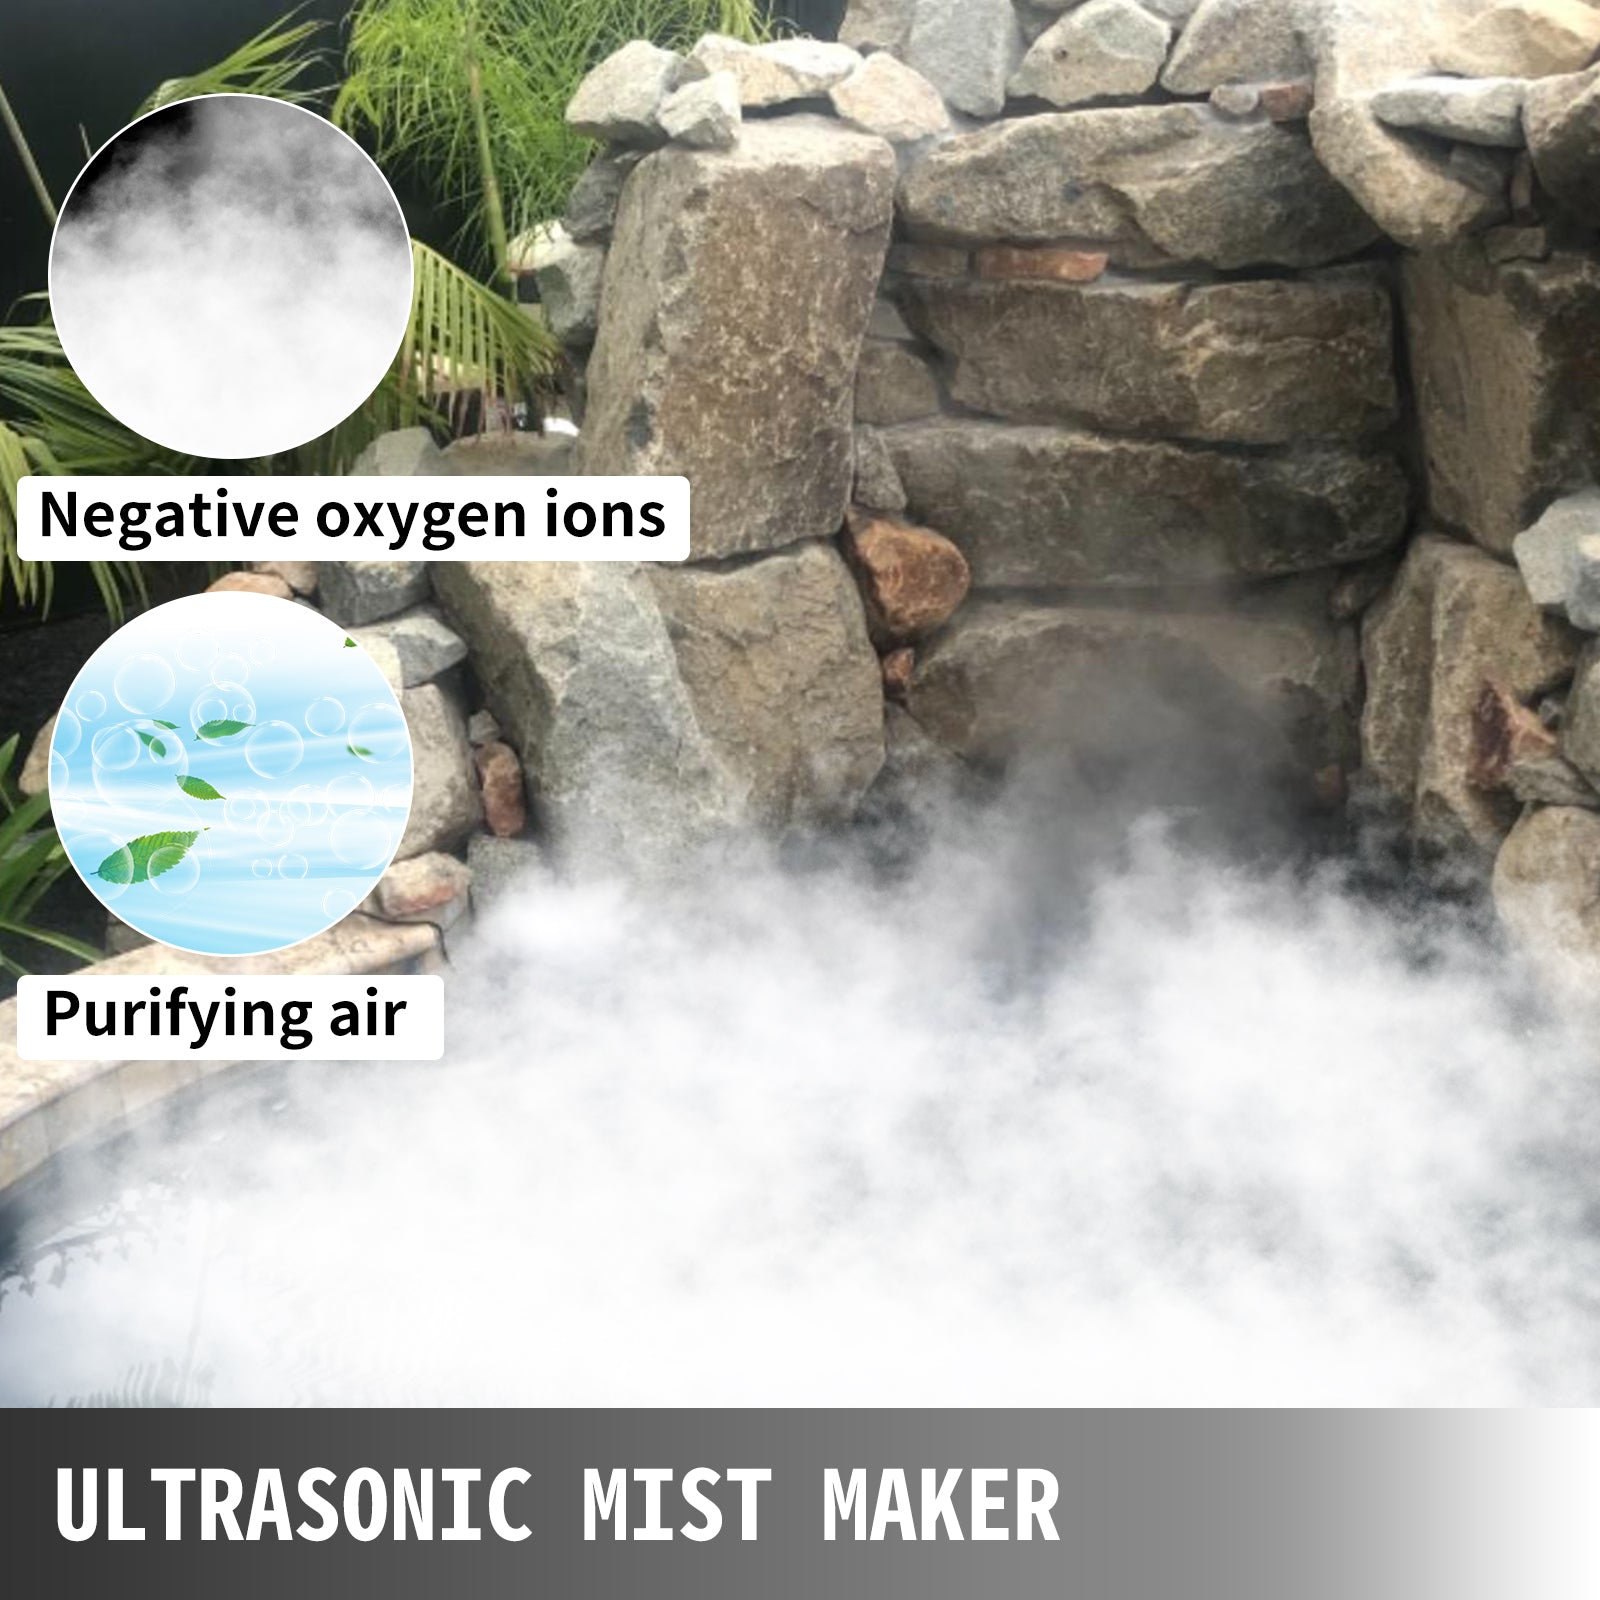 Vevor Pond Mist Maker, Ultrasonic Mist Fogger 6 Head Mist Humidifier Atomizer